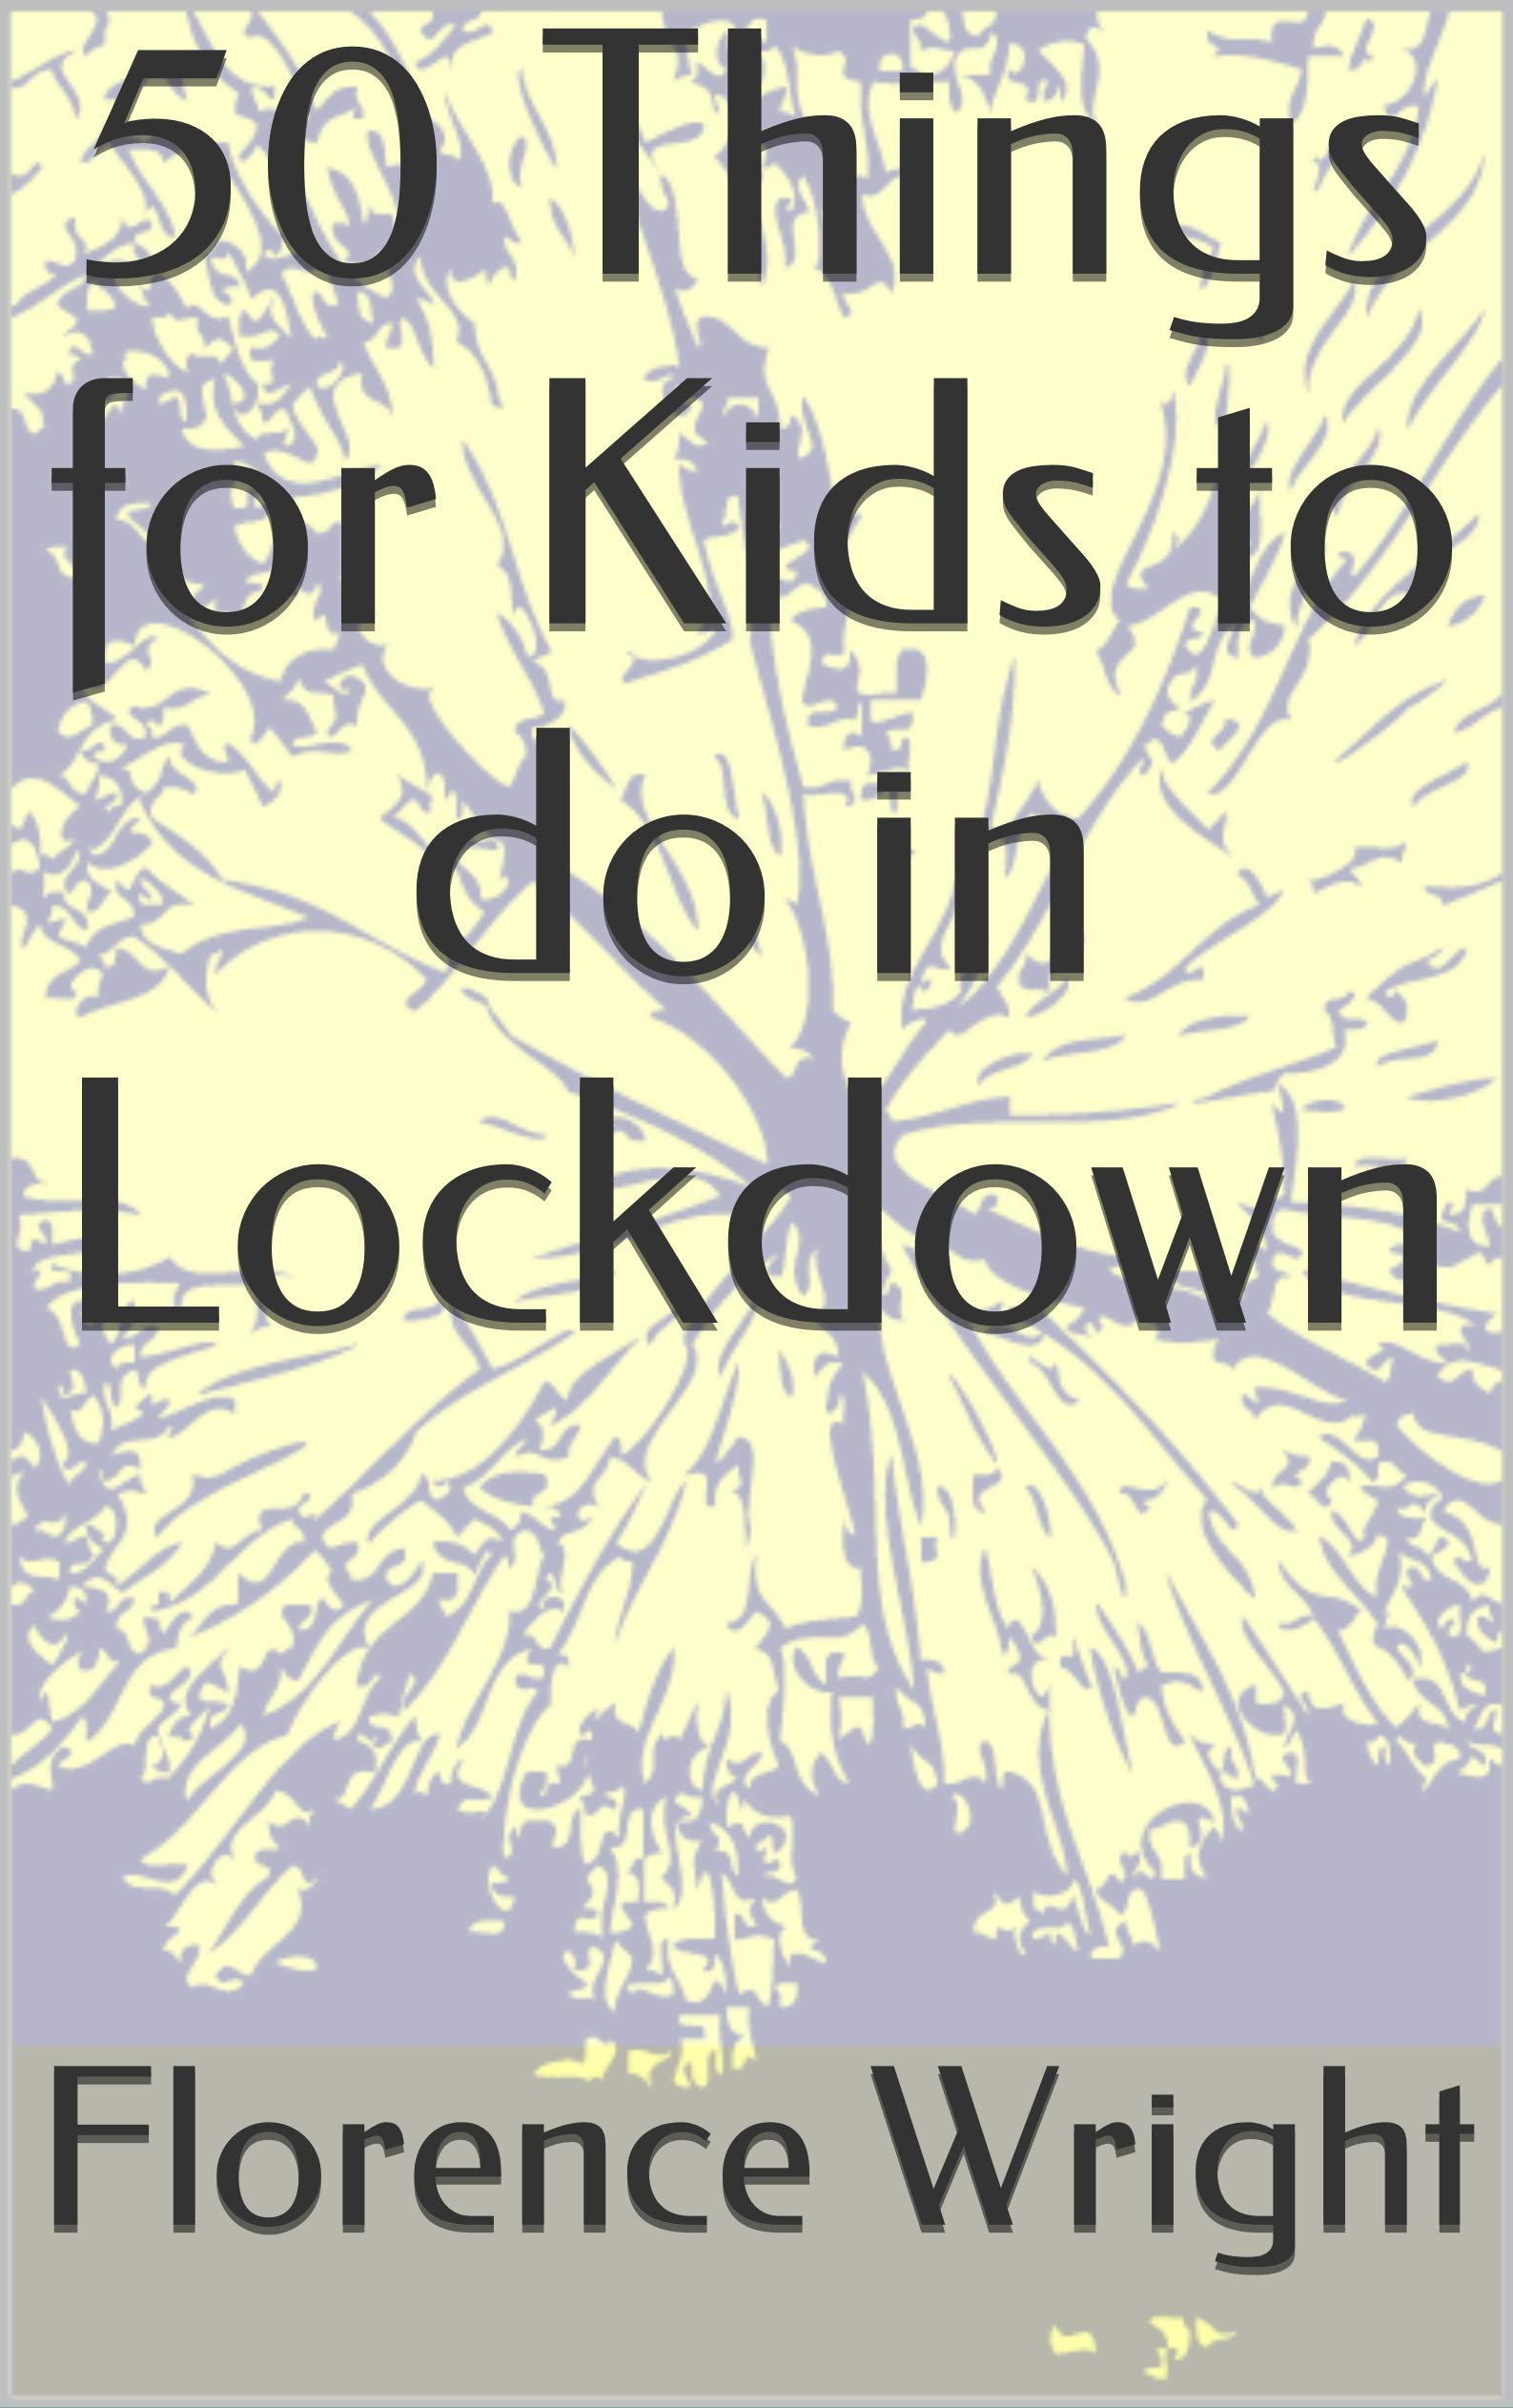 50 Things for Kids to do in Lockdown Florence Wright